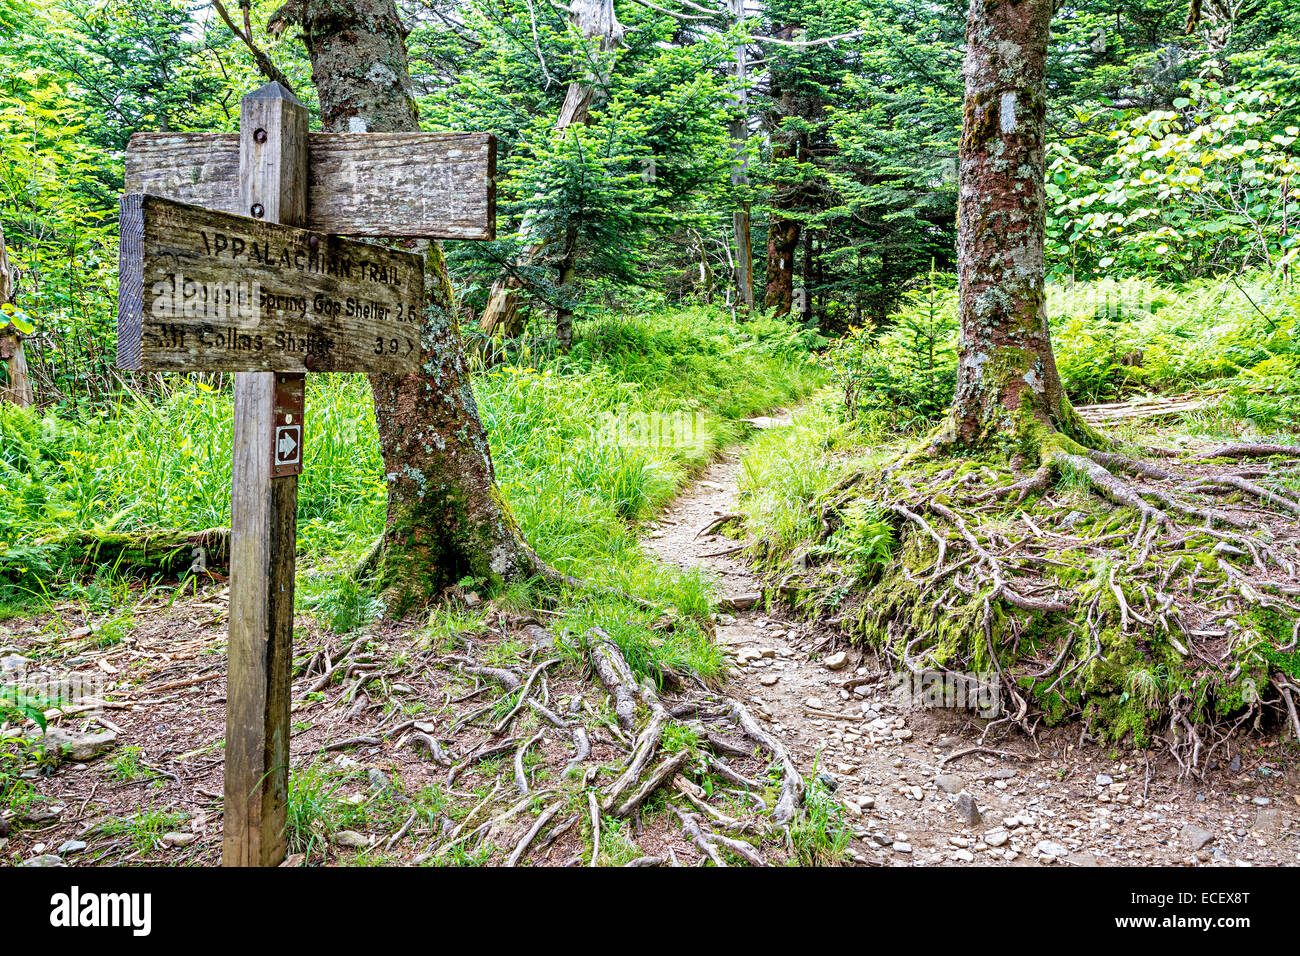 Appalachian trail and sign - Stock Image